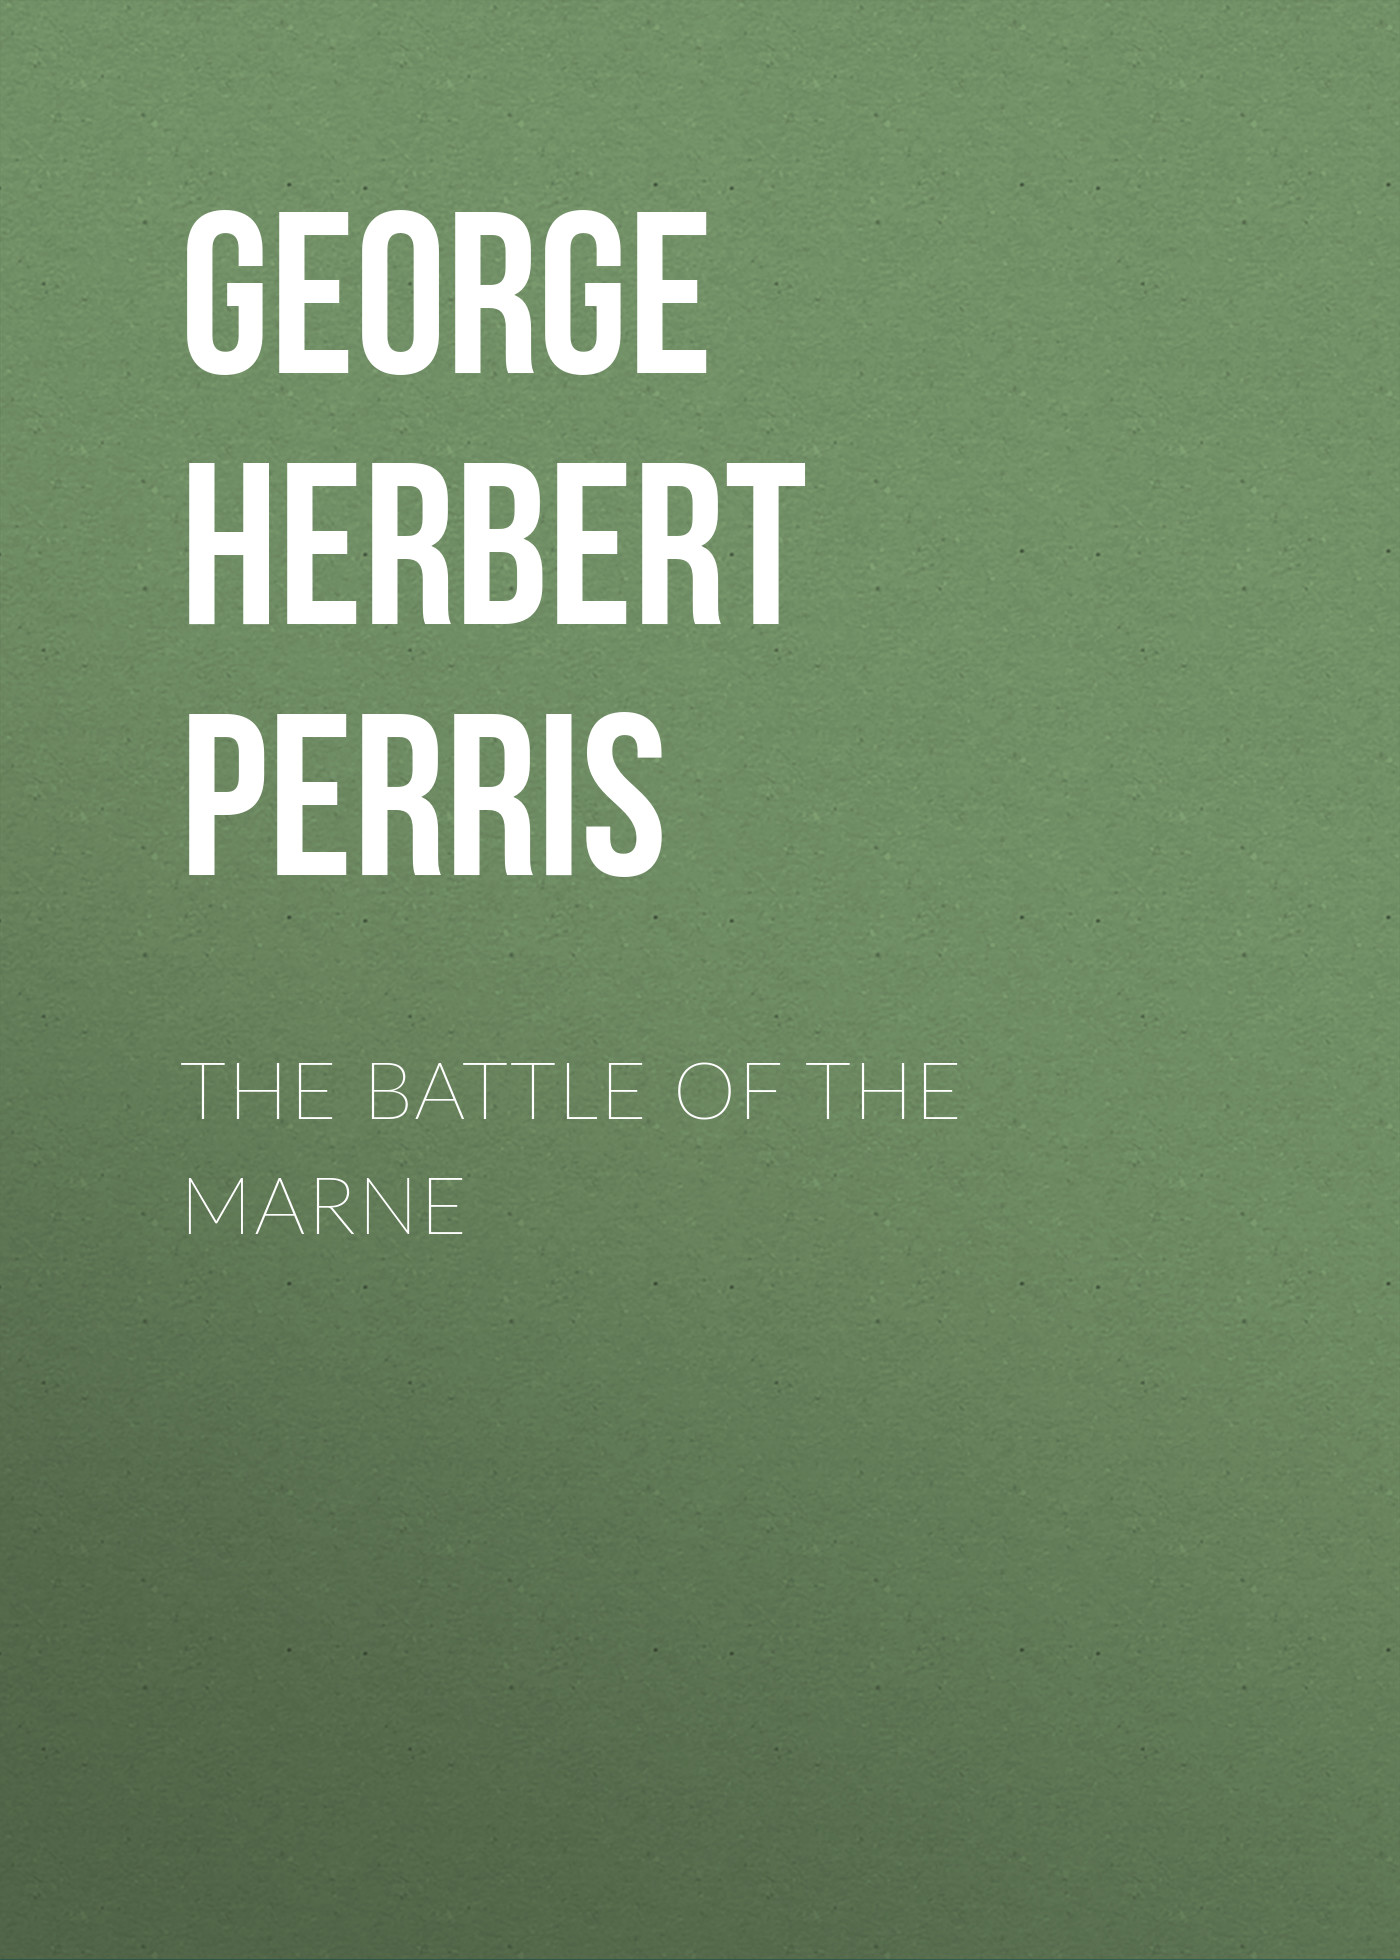 George Herbert Perris The Battle of the Marne george herbert perris the battle of the marne